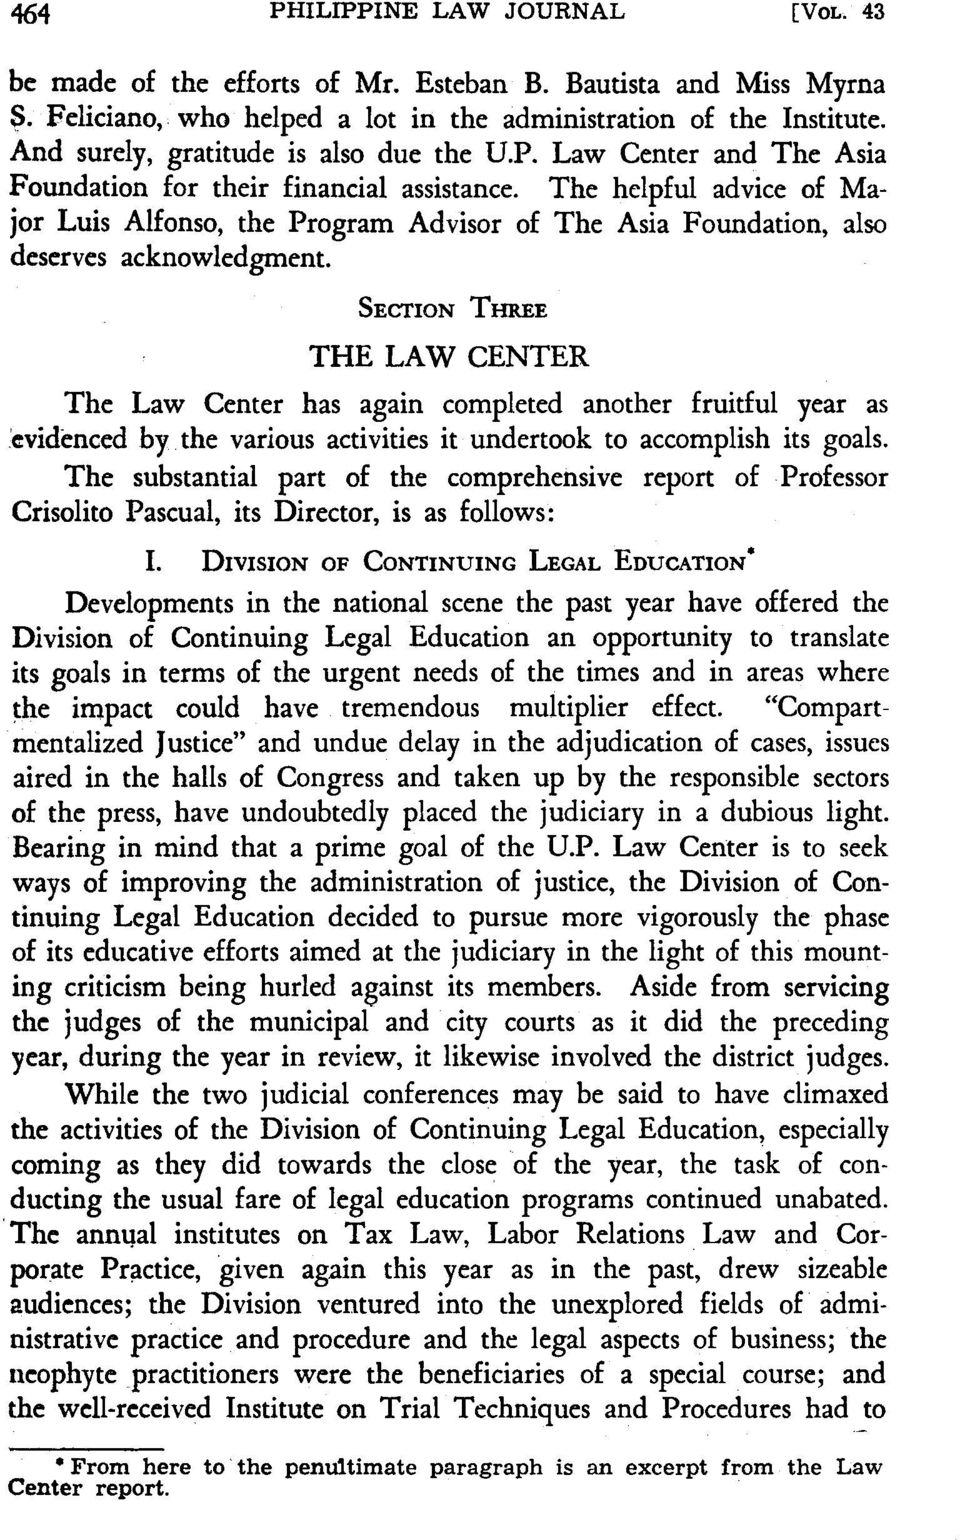 THE LAW CENTER The Law Center has again completed another fruitful year as ;evidenced by the various activities it undertook to accomplish its goals.